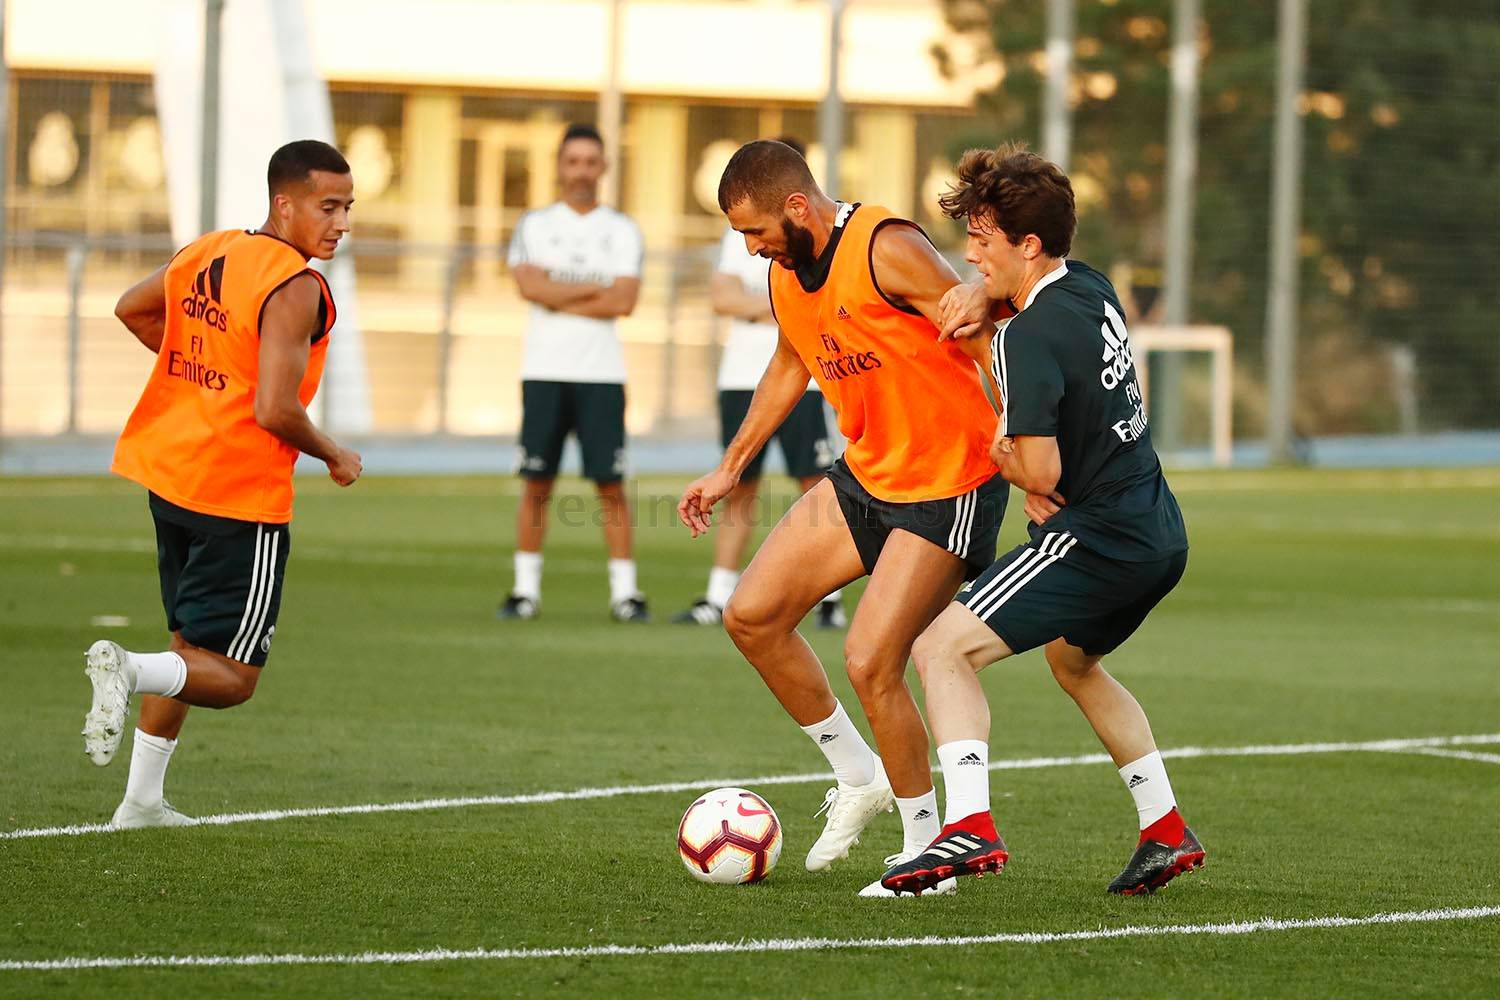 Real Madrid - Entrenamiento del Real Madrid - 10-09-2018